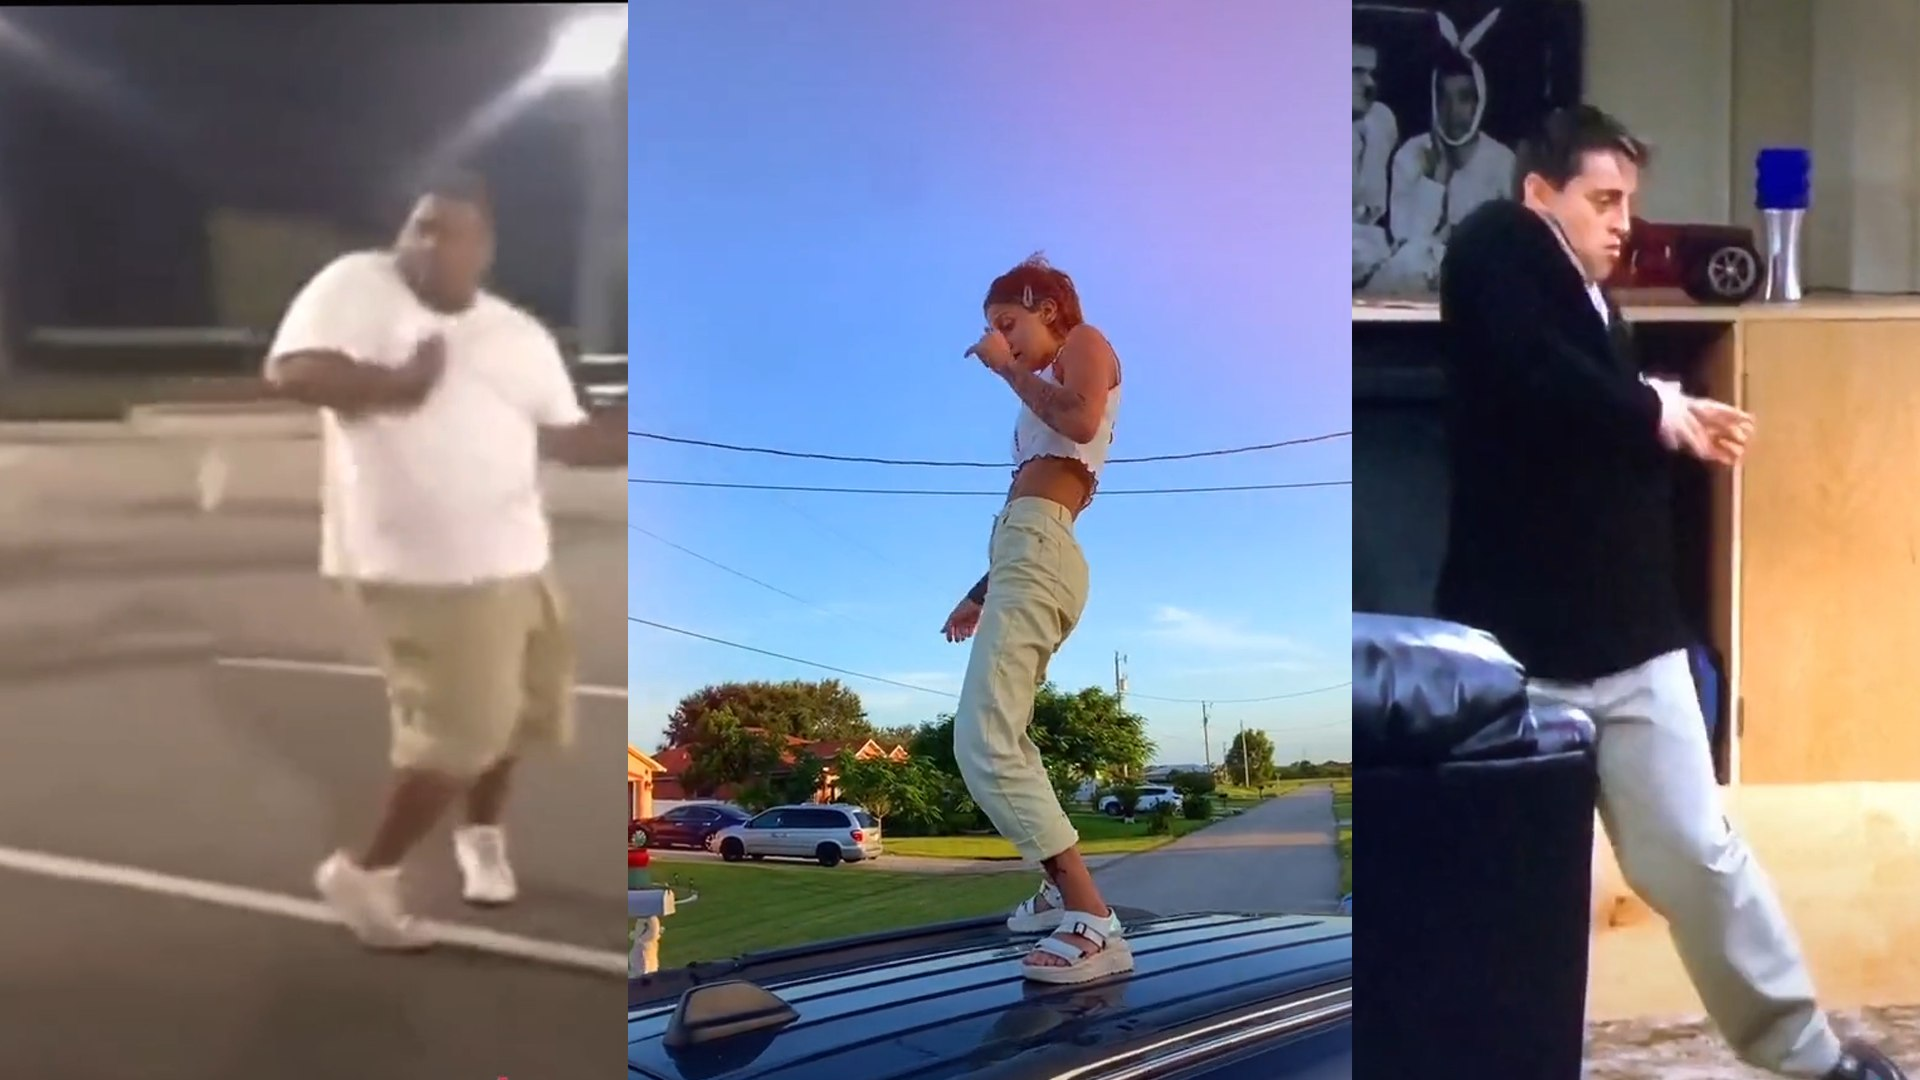 TikTok Users Are Dancing Like Their Favorite TV Show Characters